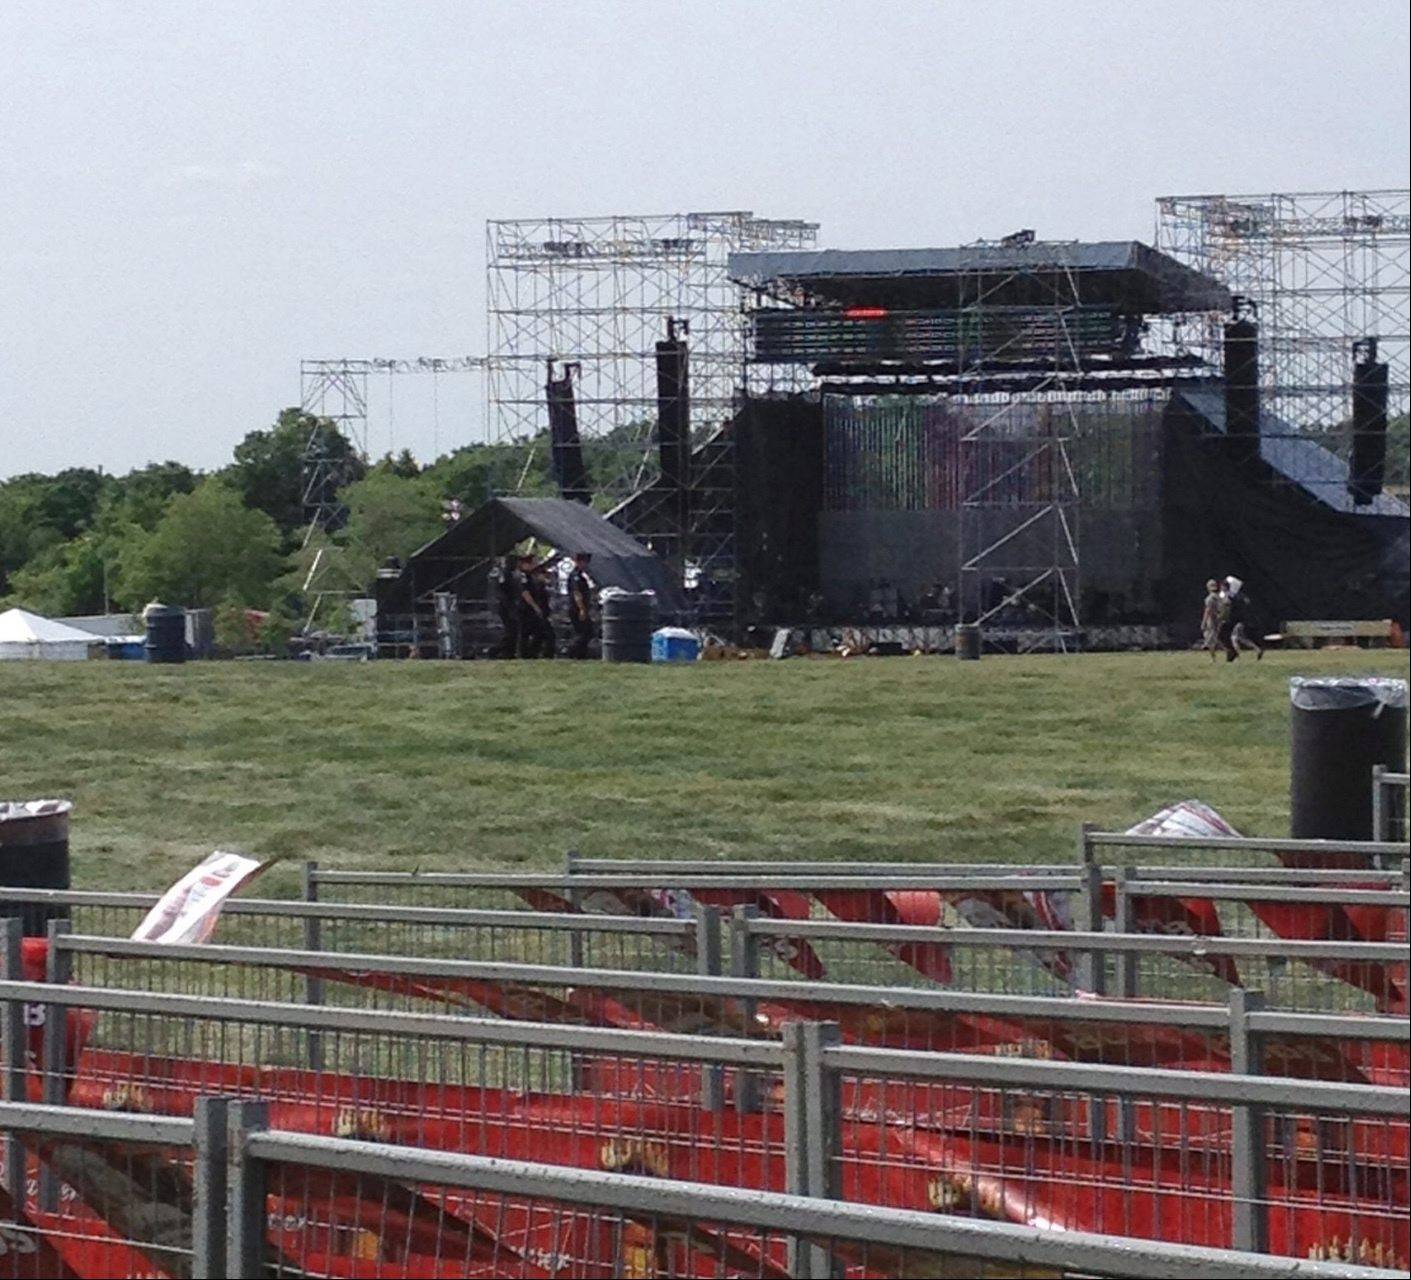 This photo provided by Alexandra Mihan shows a stage before it collapsed at the site for a Radiohead concert at Downsview Park in Toronto on Saturday, June 16, 2012. Toronto paramedics say one person is dead and another is seriously hurt after the stage collapsed while setting up for a Radiohead concert. They say two other people were injured and are being assessed.